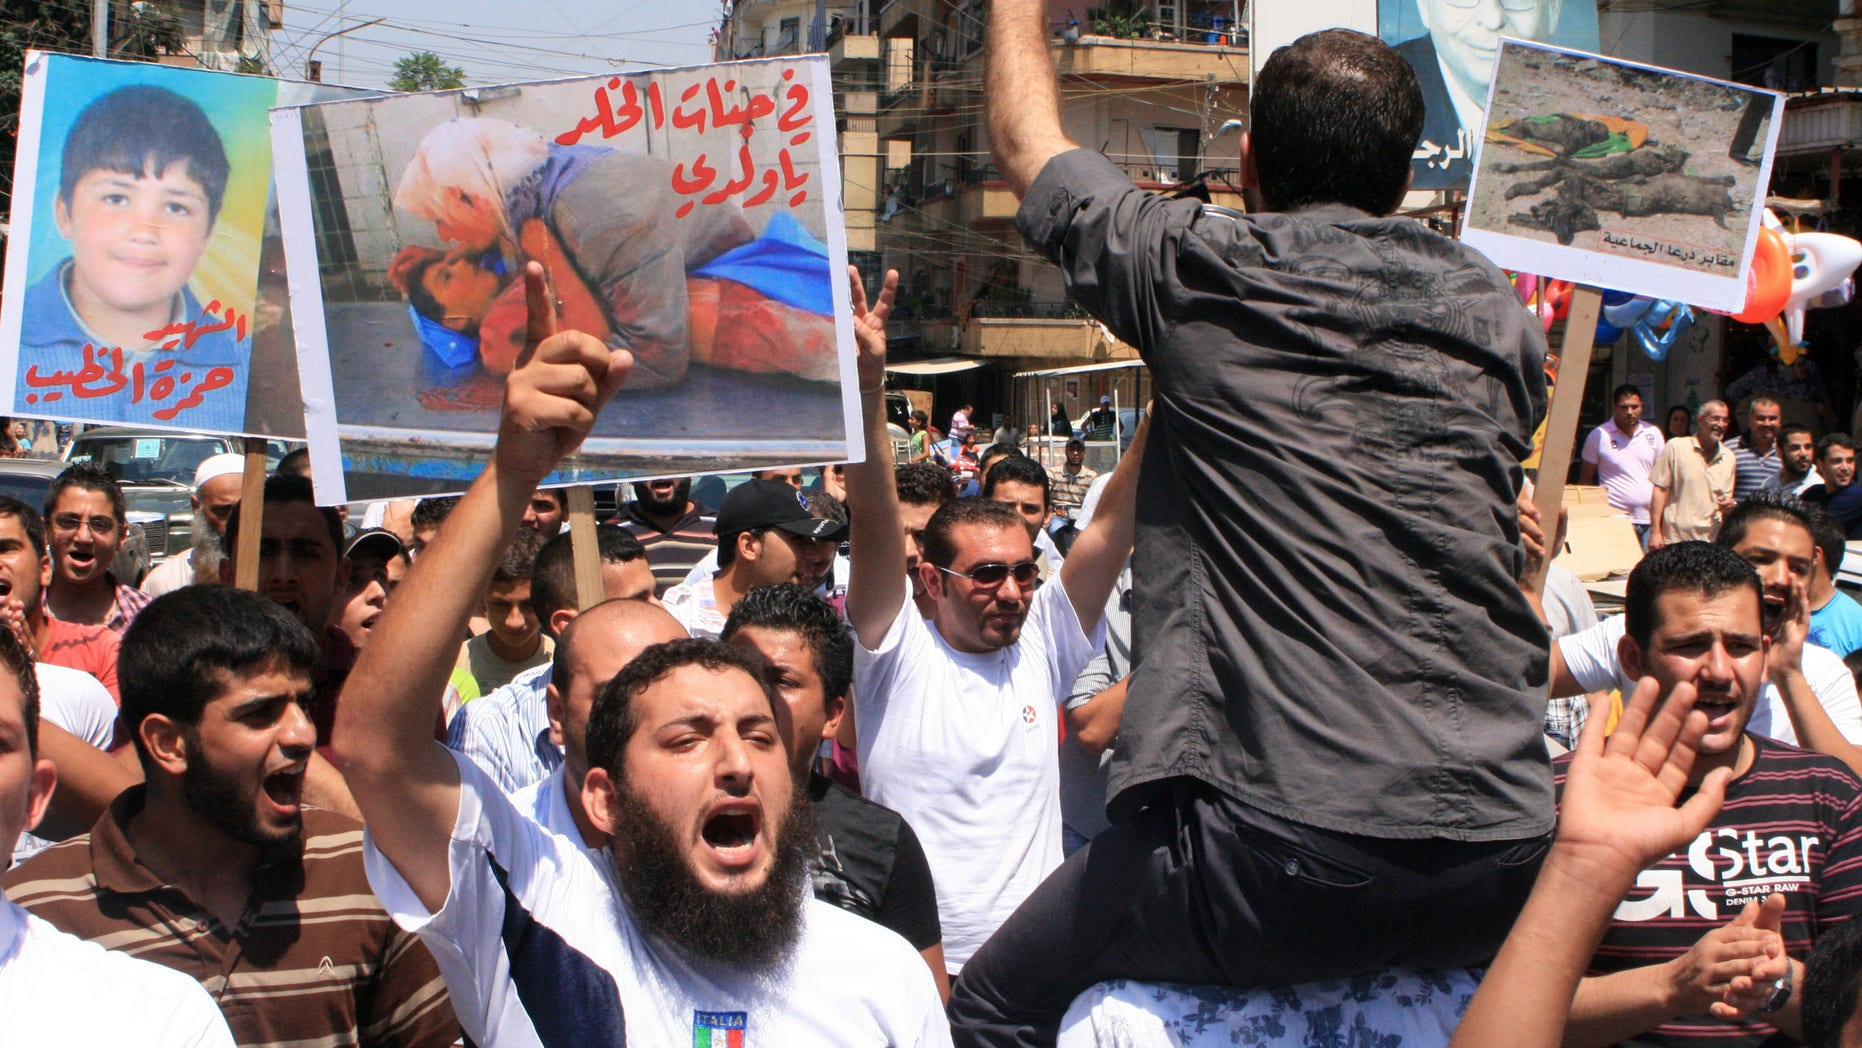 """Lebanese protesters shout slogans as they carry banners in Arabic that read:"""" you are in heaven my son,"""" center, """"the martyr Hamza el-Khatib,"""" left, and """" Daraa mass graves,"""" right, during a rally in solidarity with Syrian anti-government protesters in the northern city of Tripoli, Lebanon, Friday, July 15, 2011."""